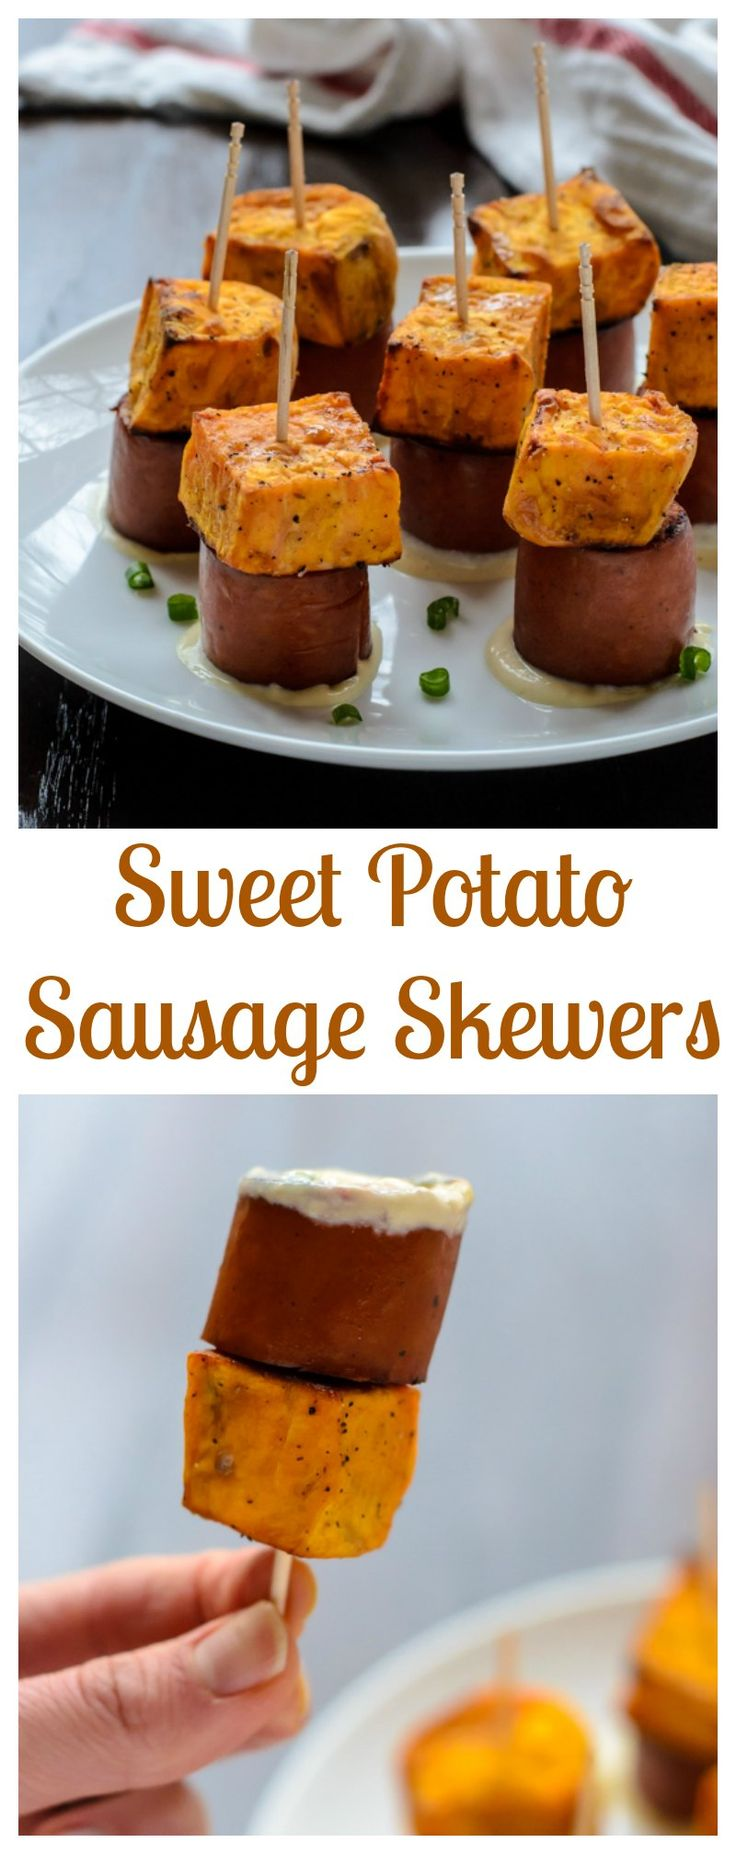 Sweet Potato Sausage Skewers. An easy, healthy appetizer recipe. {USA}